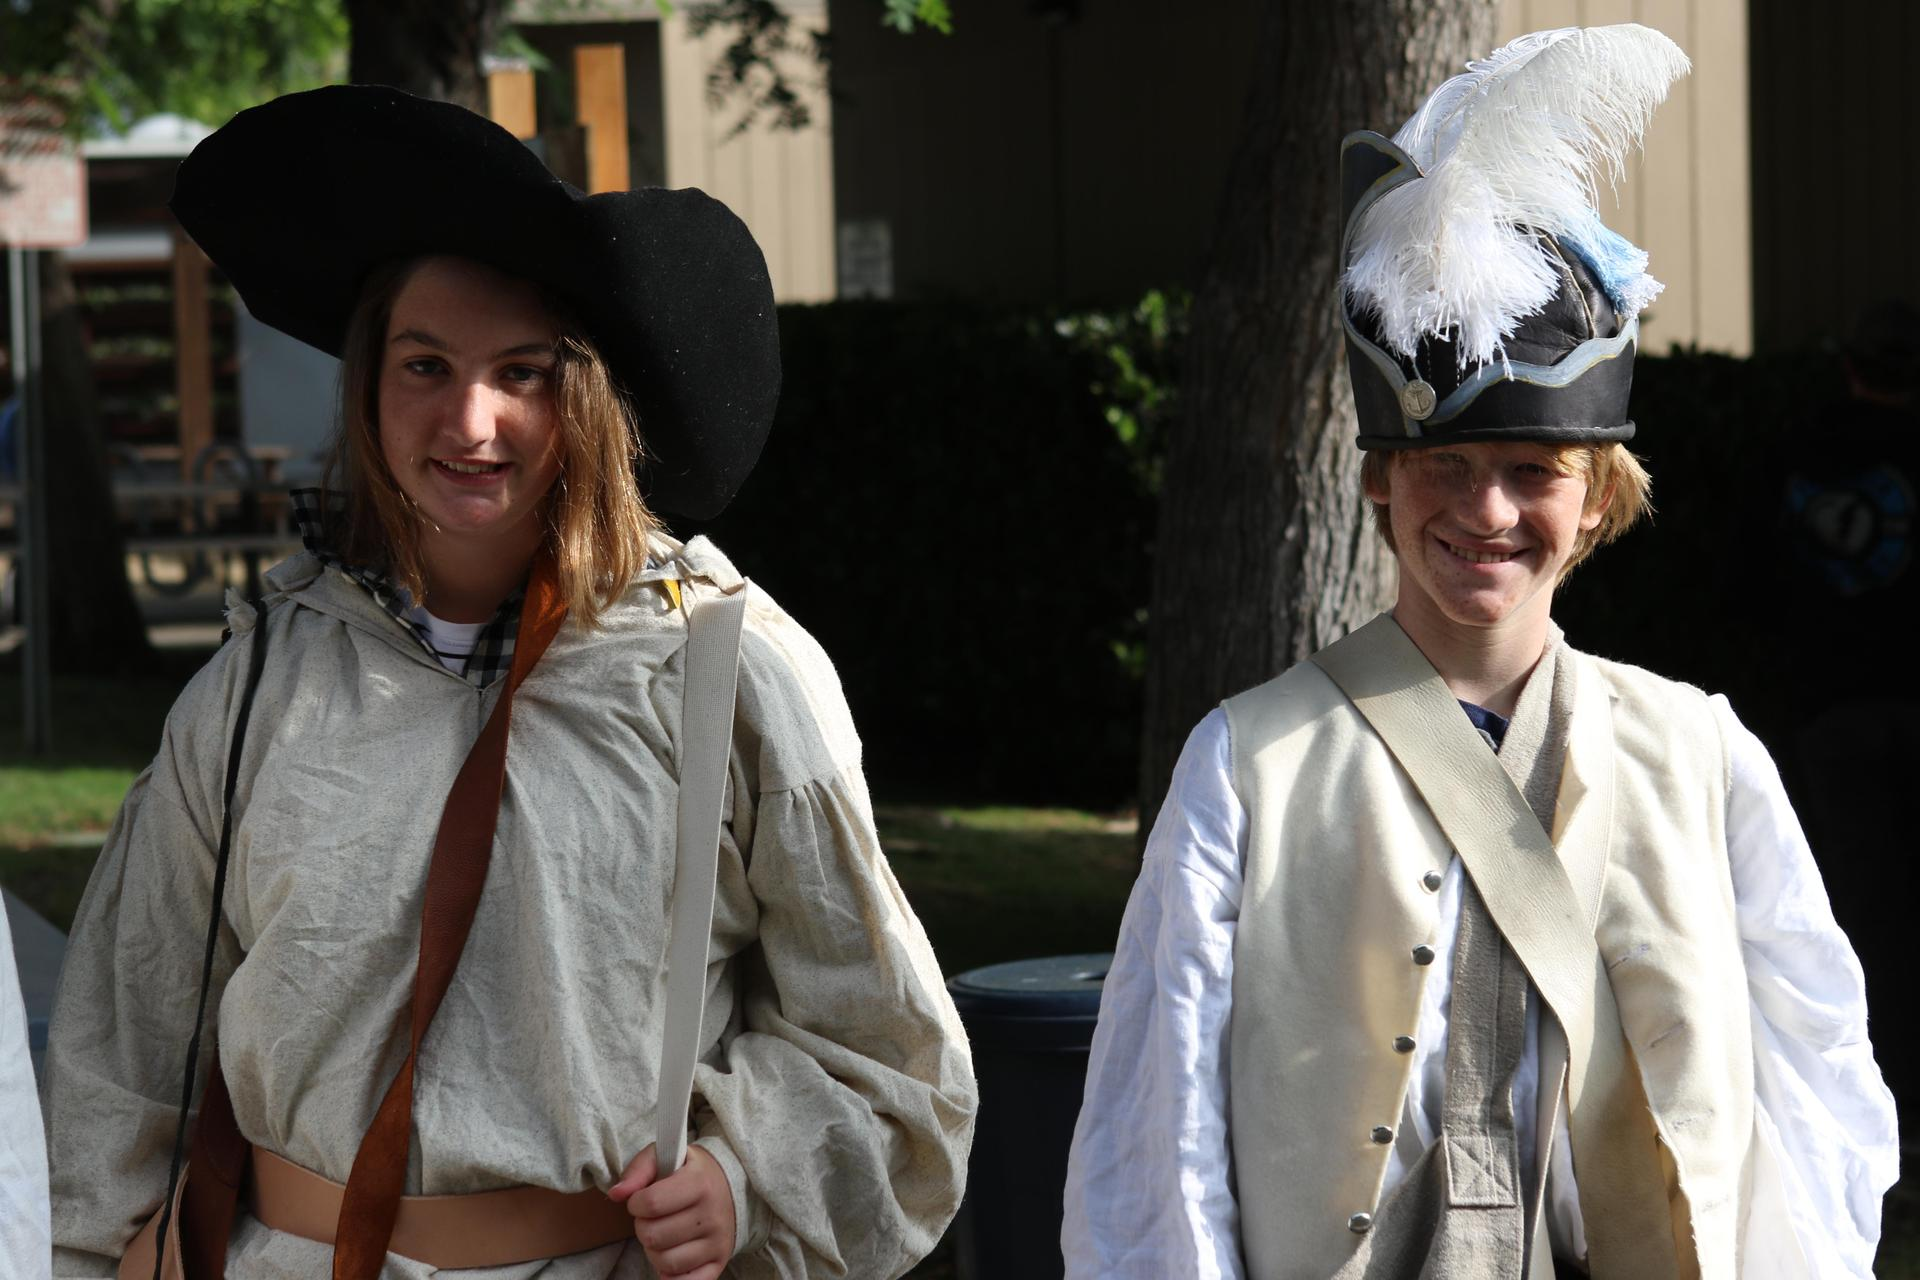 Middle school students wearing authentic colonial clothing.